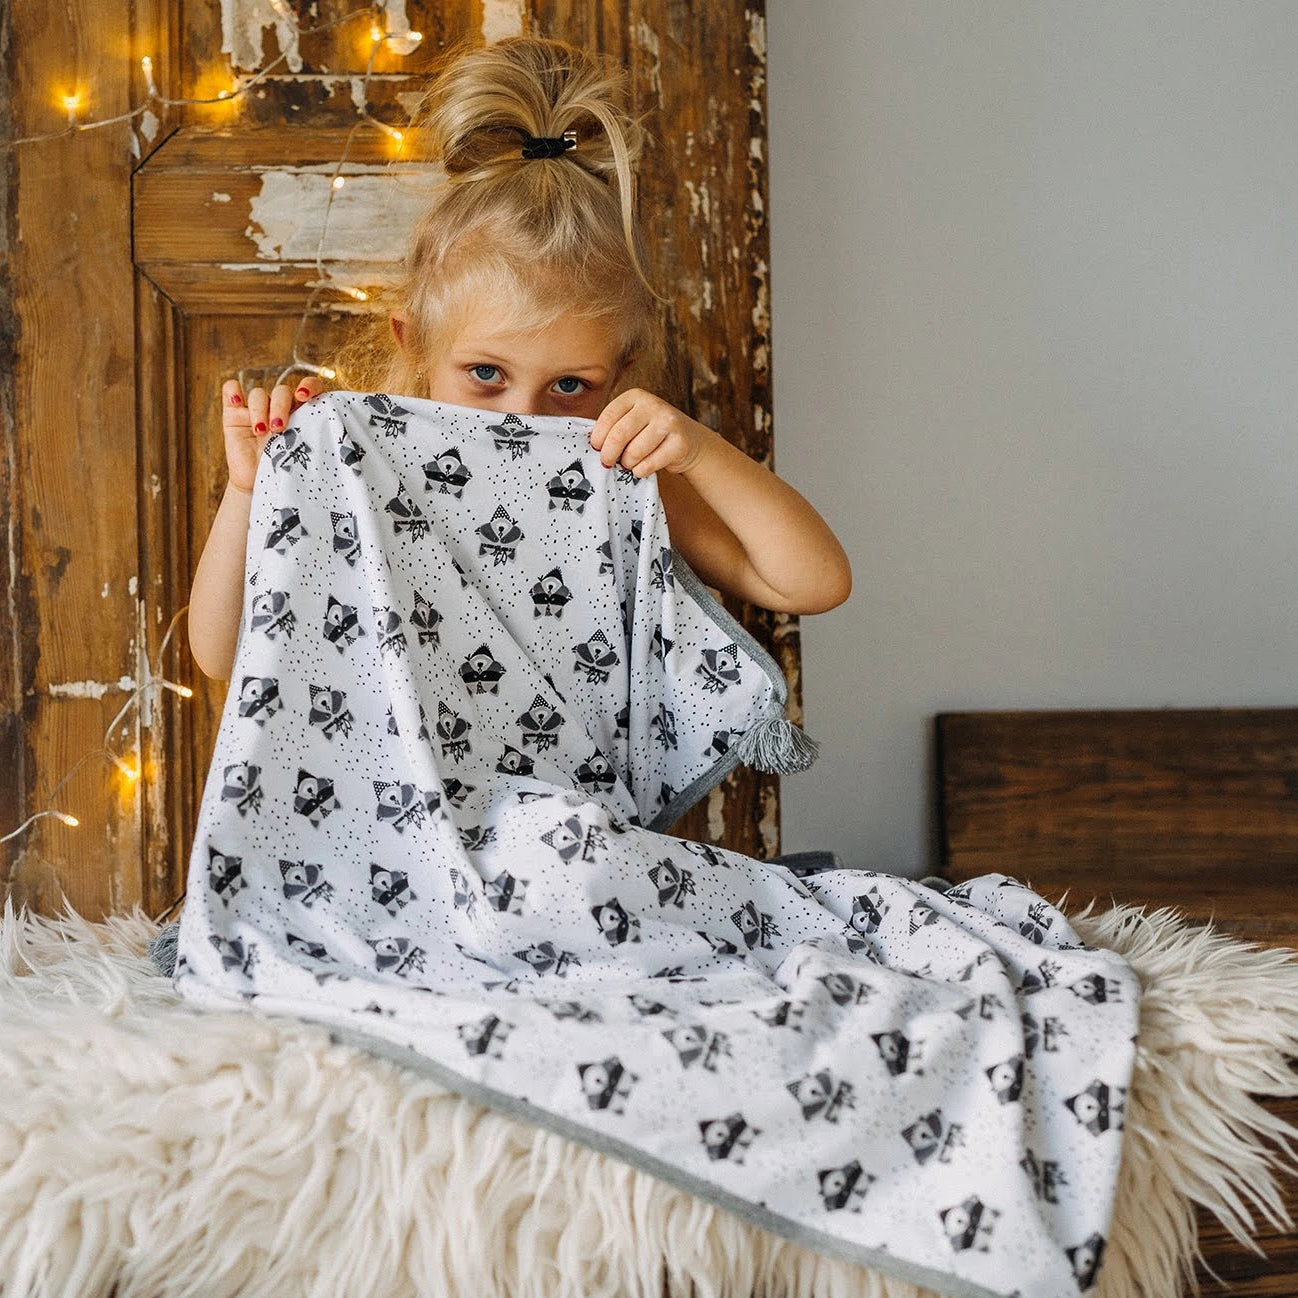 BAMBINISTA - PULP - Blankets - Cotton Reversible Blanket Fox